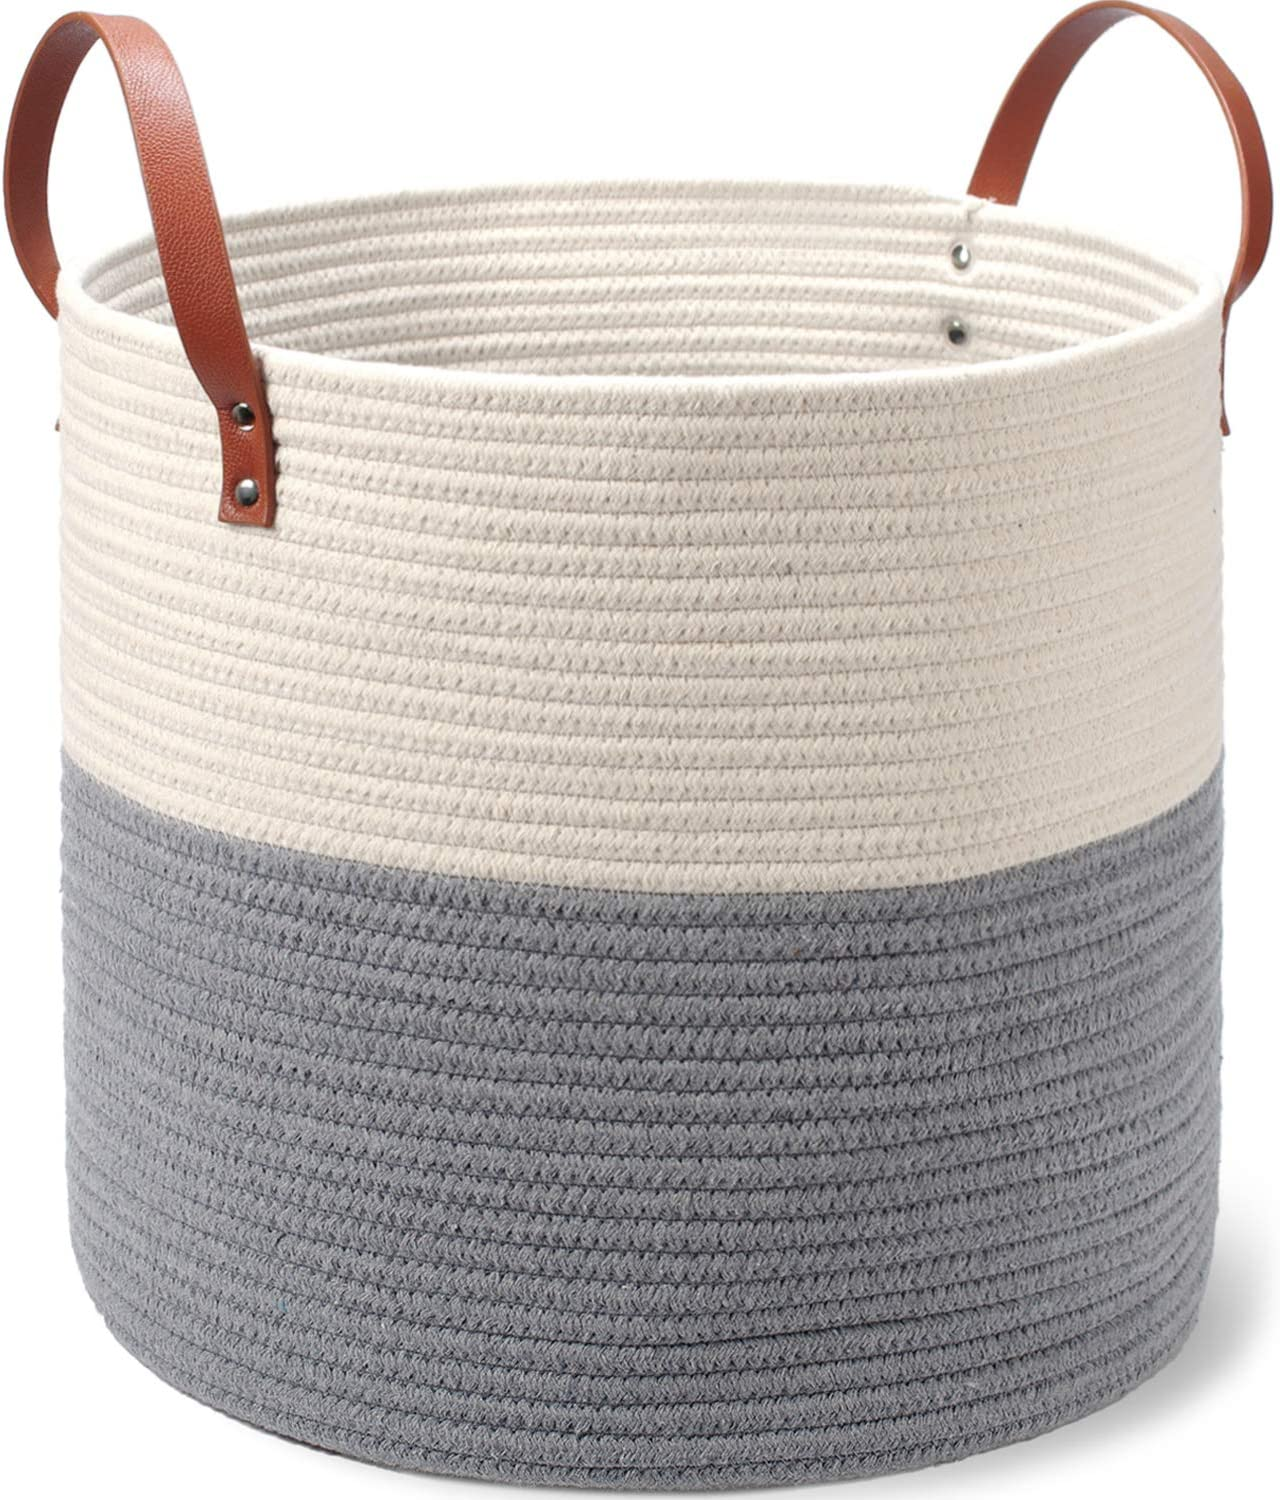 Two-Tone Coiled Cotton Rope Basket - Large Size, 15 x 15 x 14 Inch - Decorative Woven Storage Basket for Laundry Clothes, Toys, Blankets, Pillows